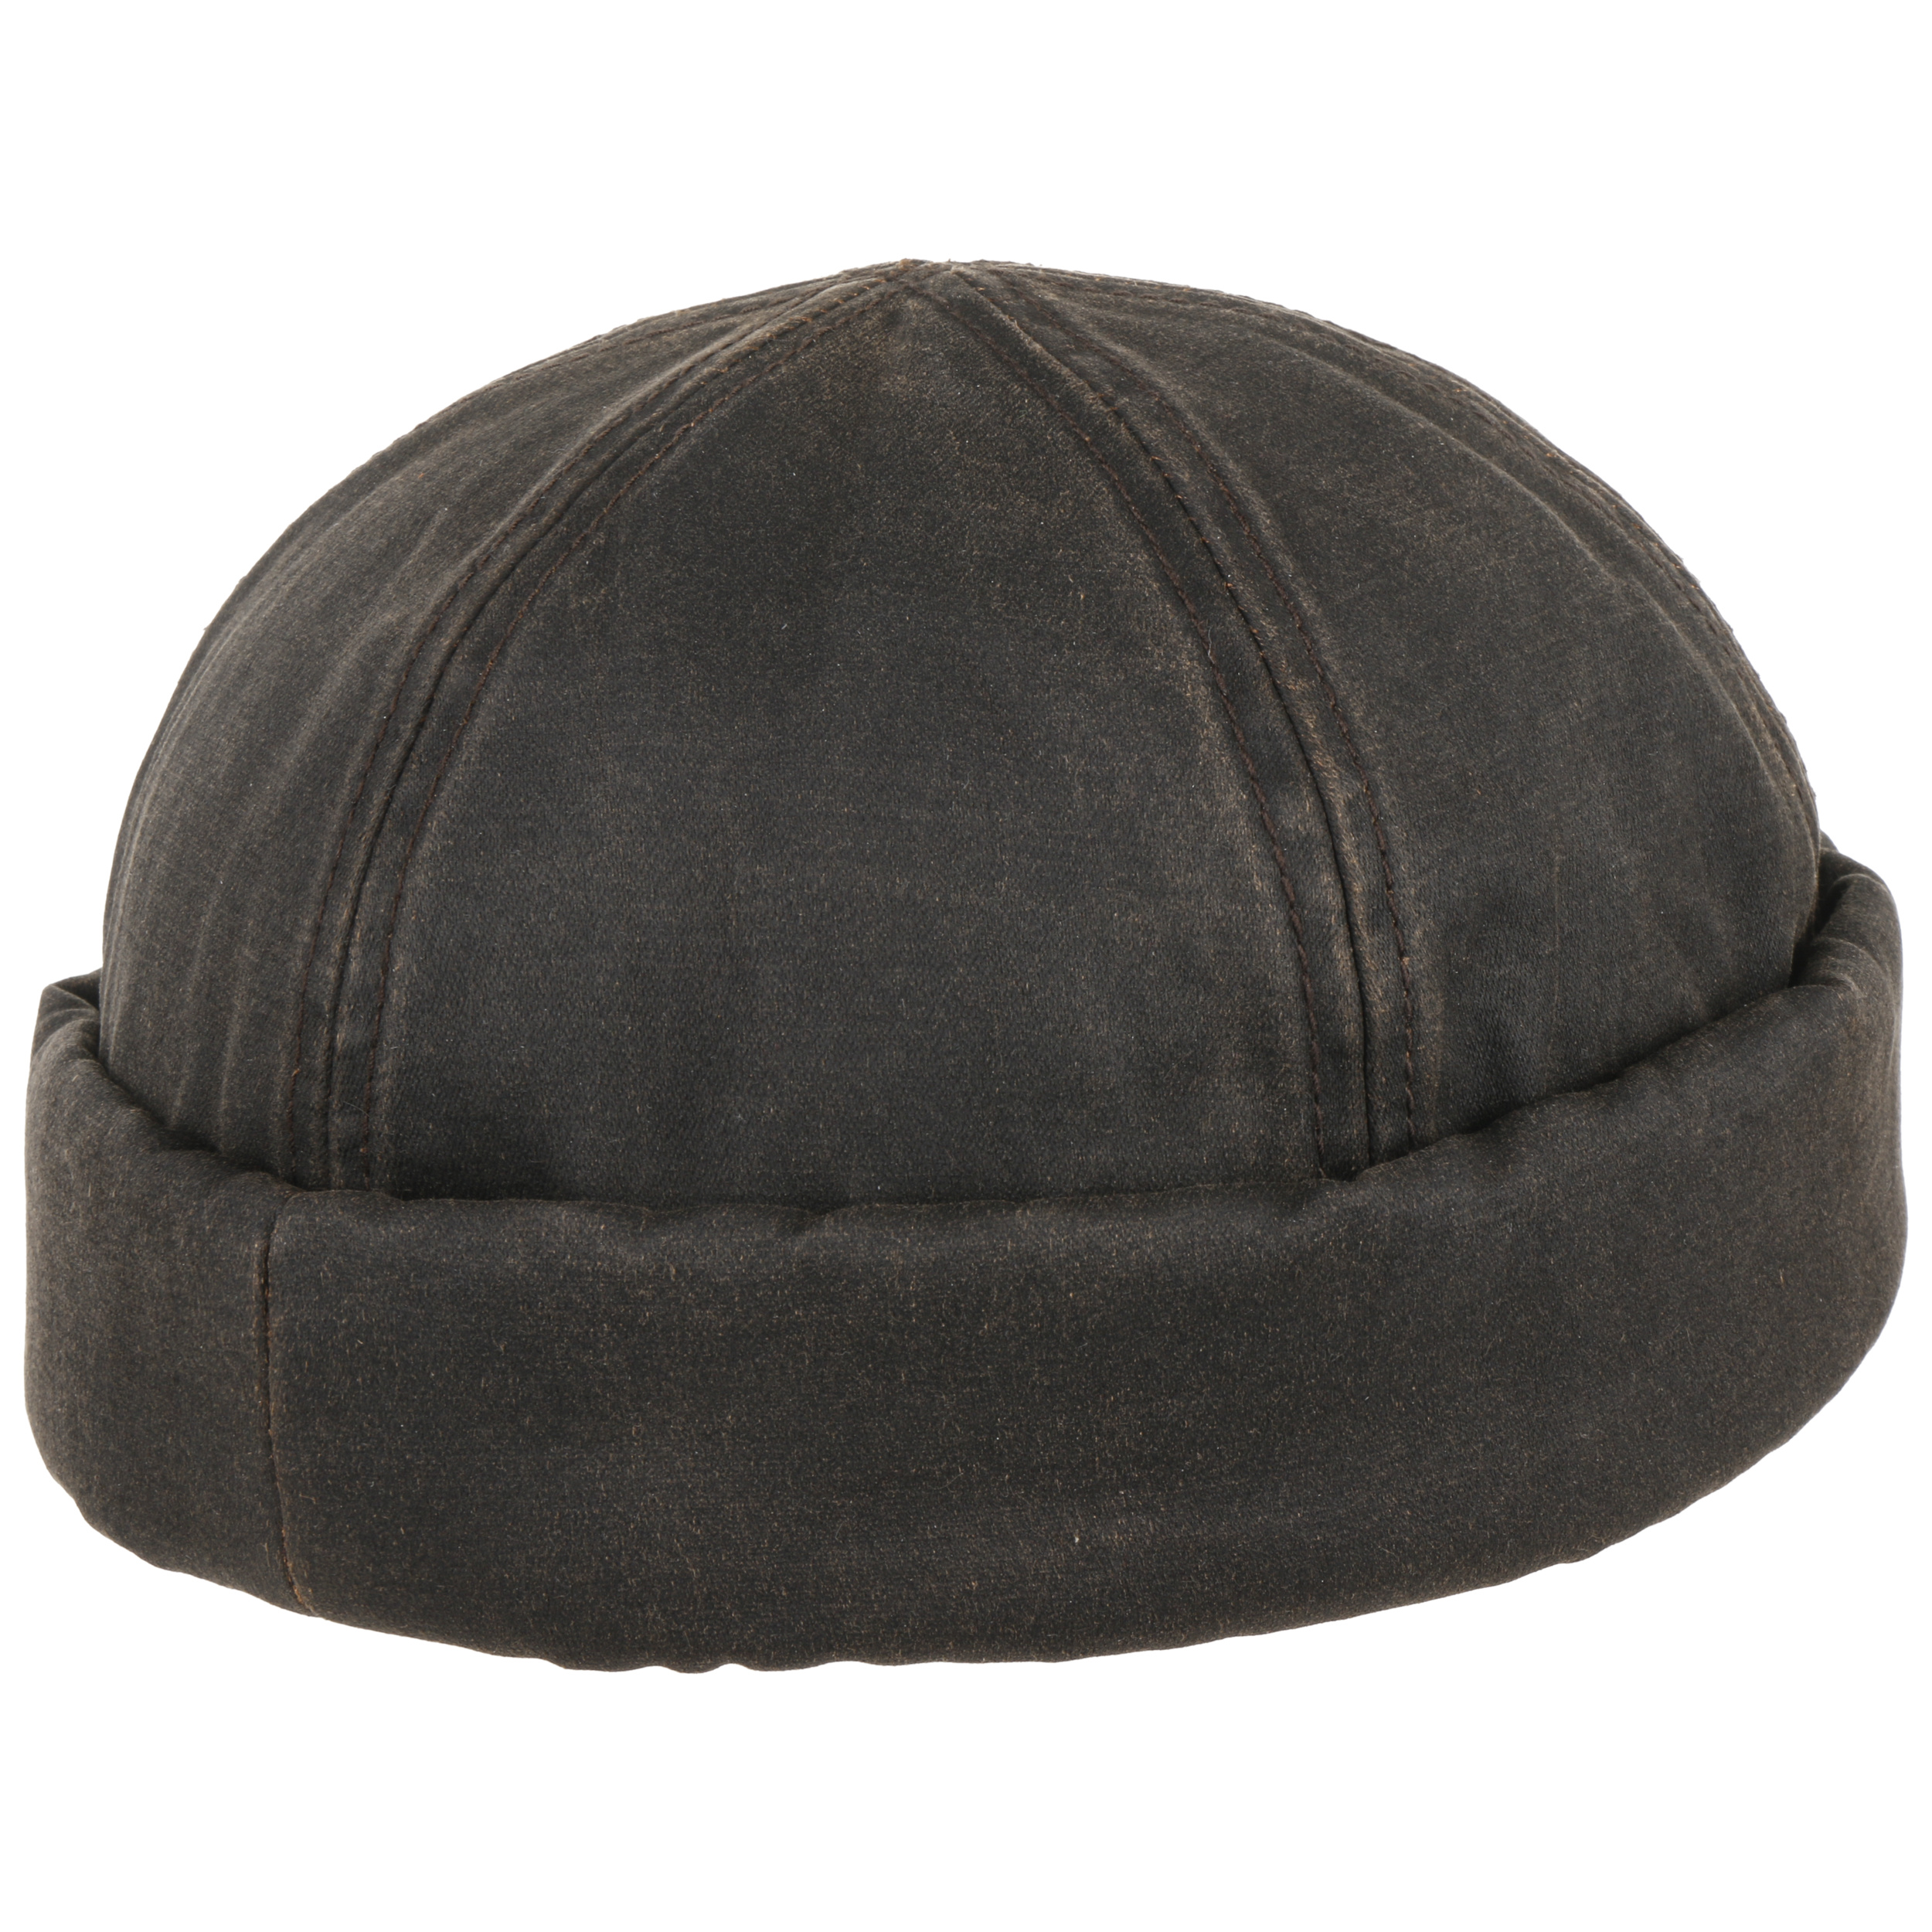 7feedbcd112 ... Old Cotton Docker Hat by Stetson - brown 3 ...